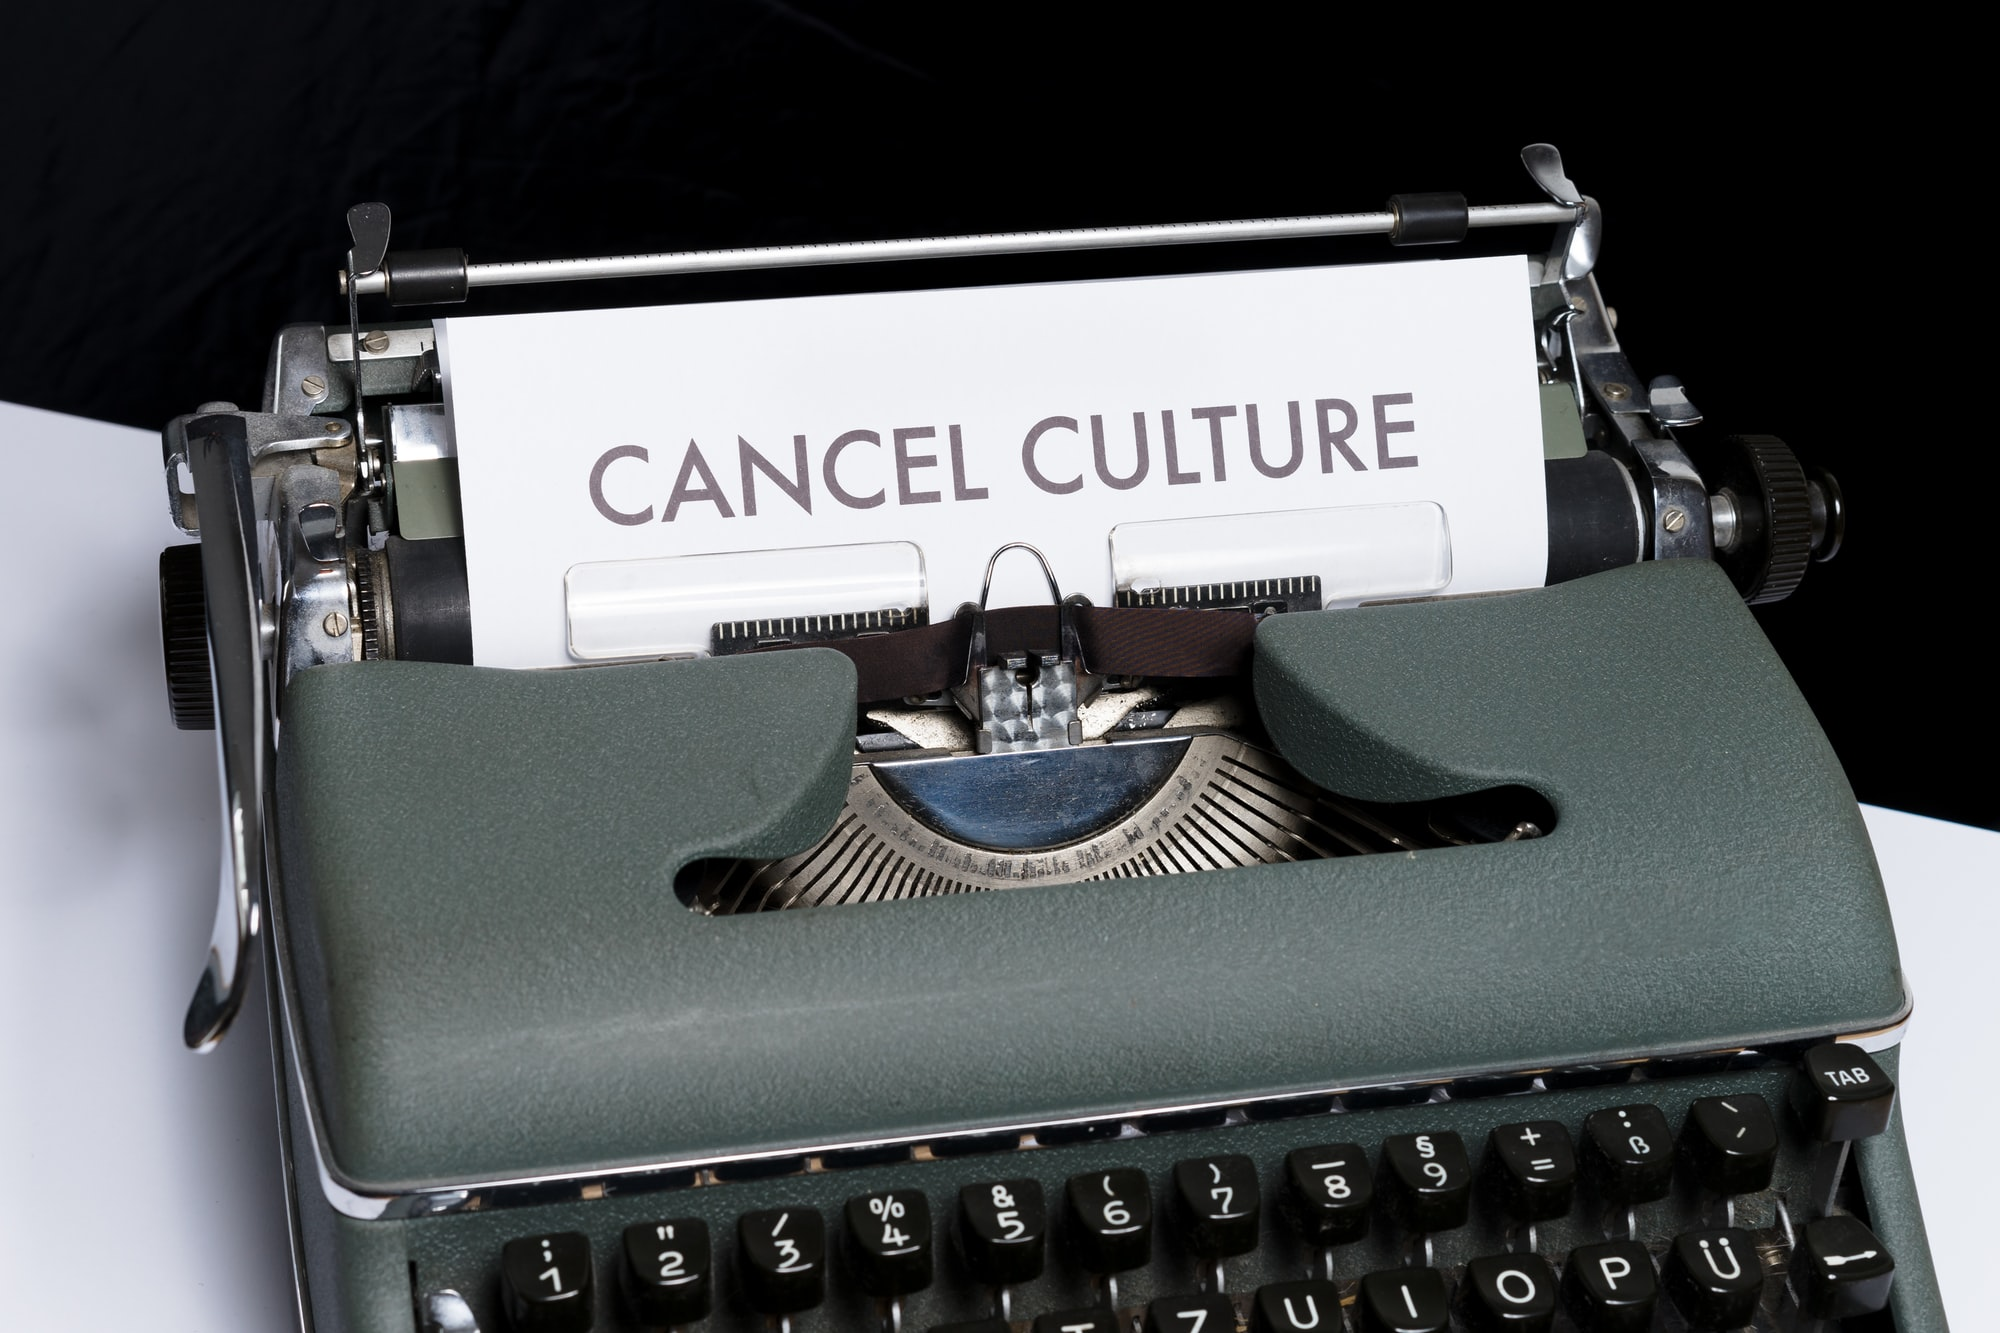 The Flipside of Cancel Culture